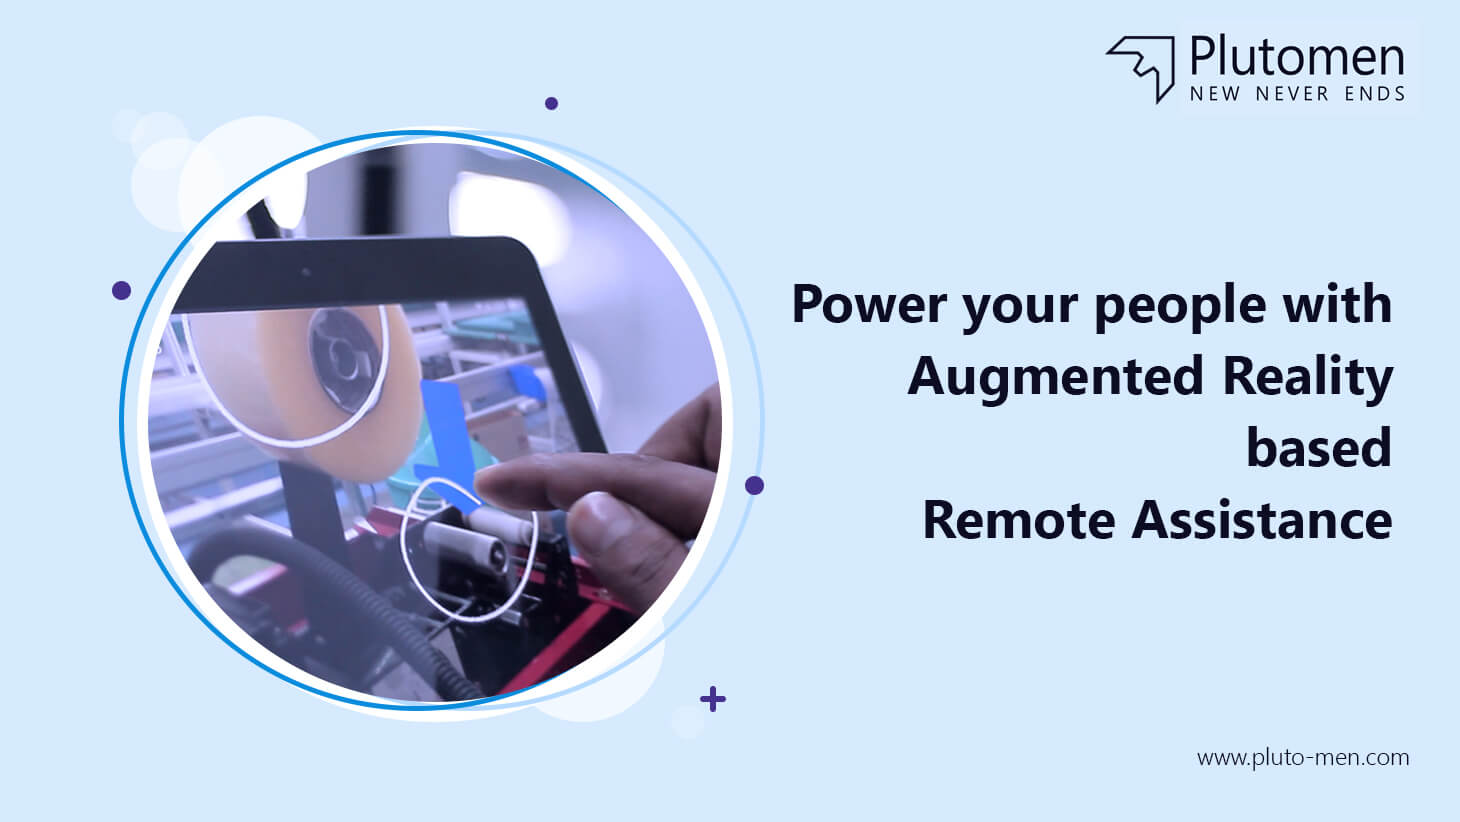 Power your people with Augmented Reality based Remote Assistance